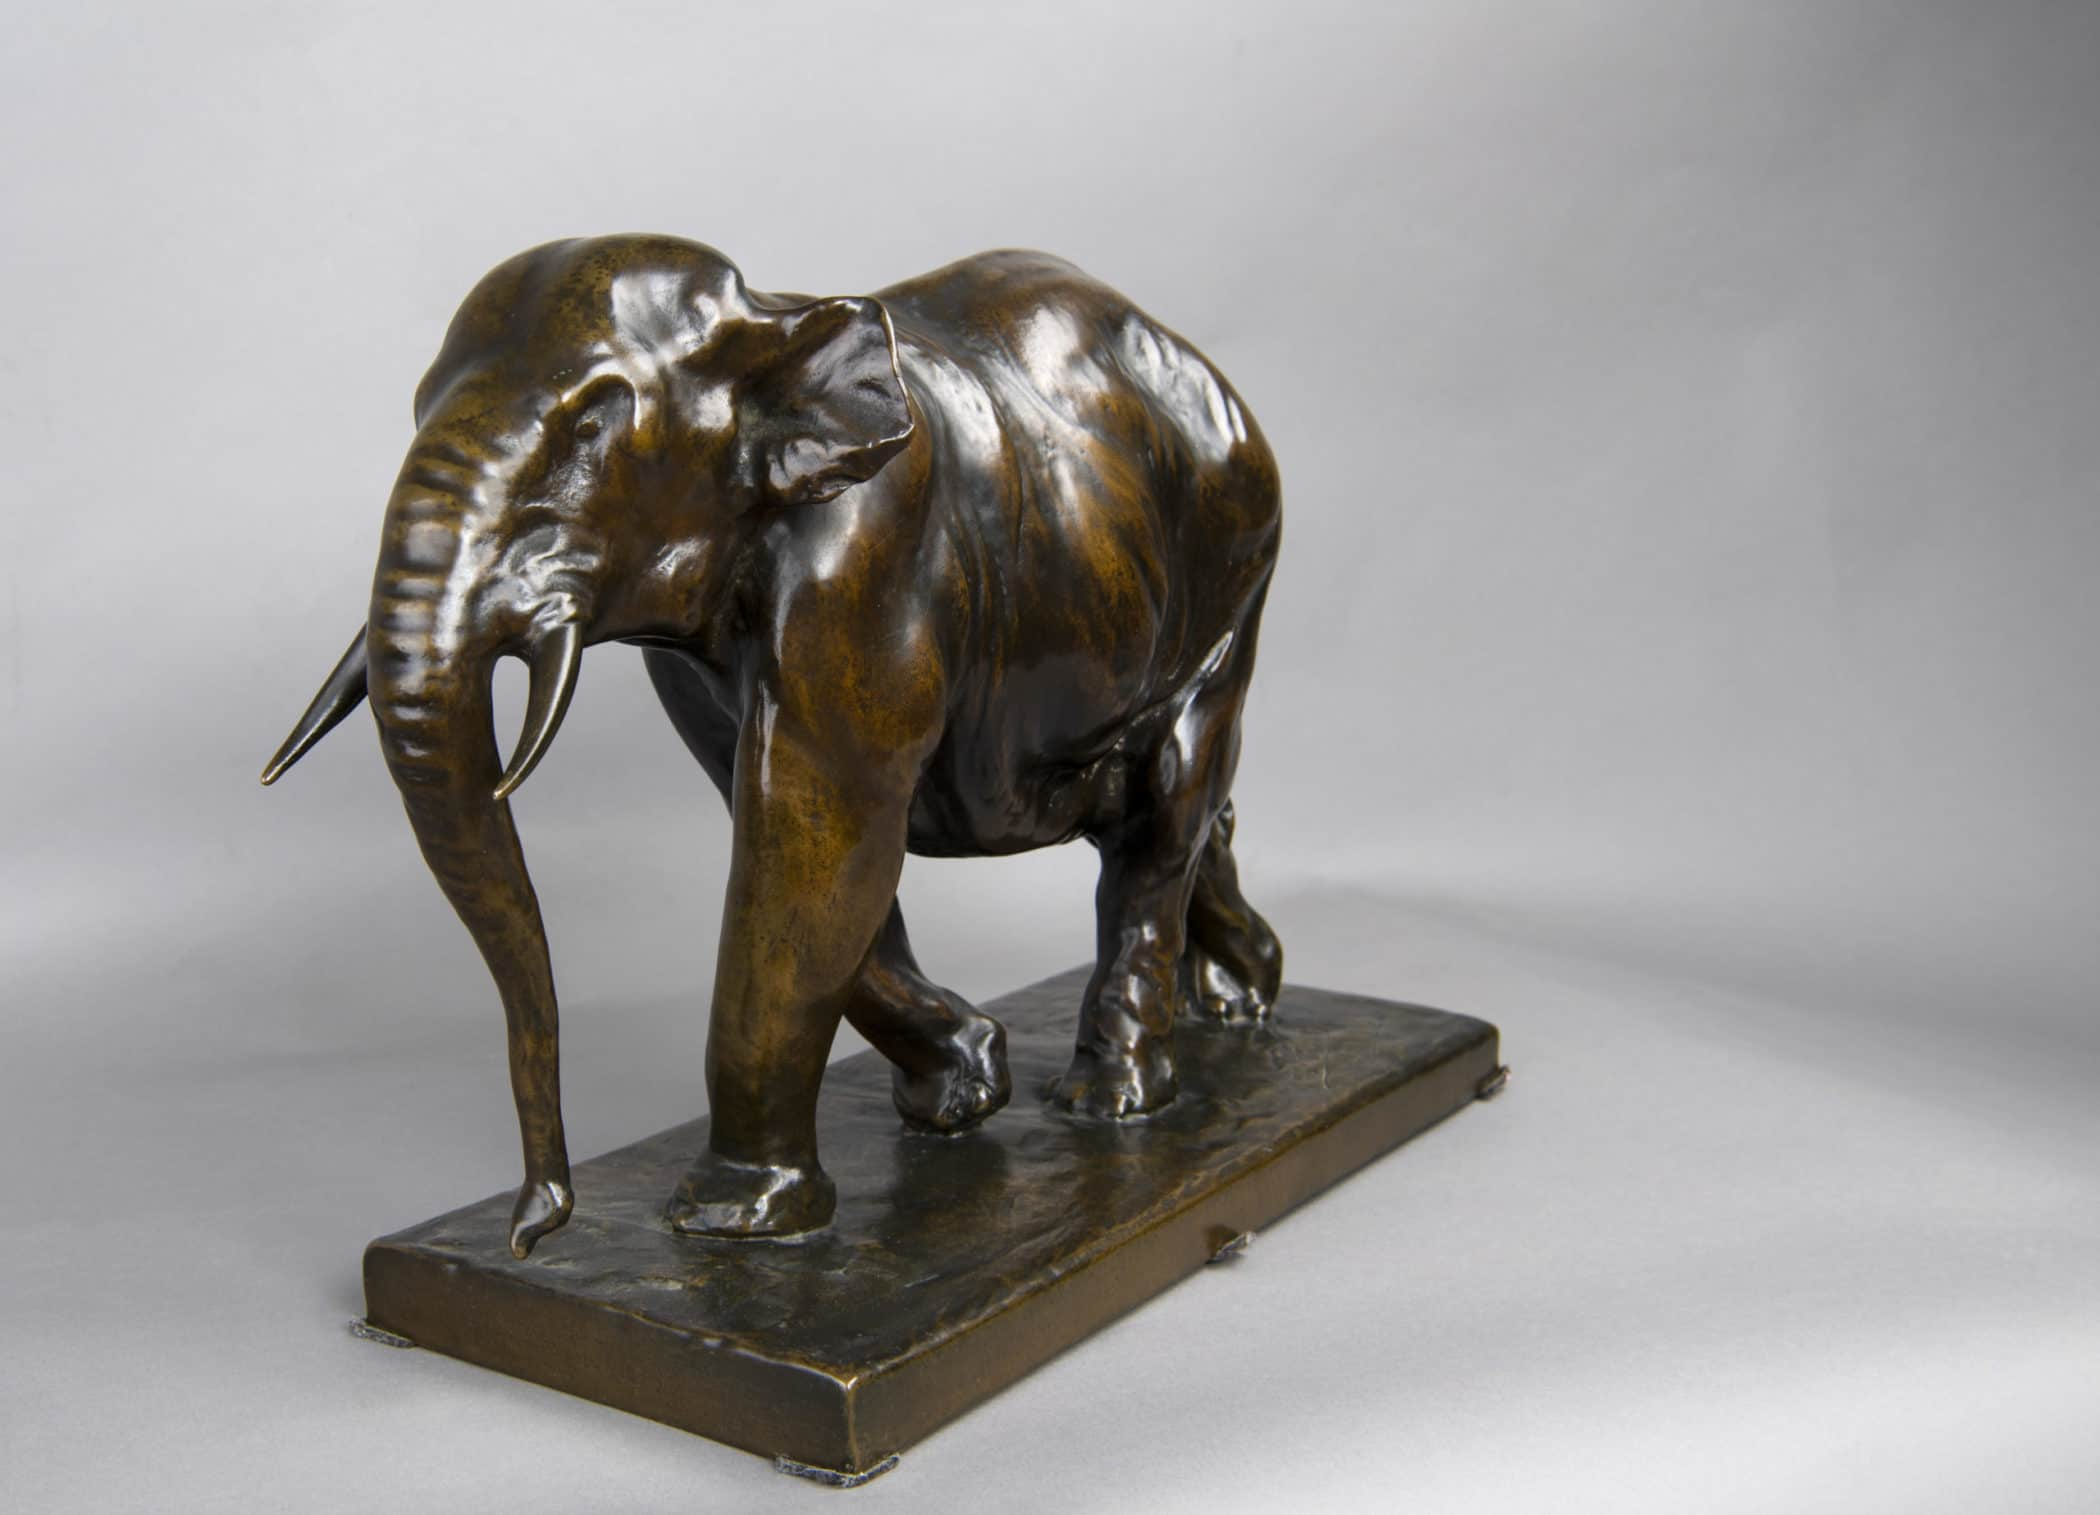 Elephant in bronze dated and signed Jean Gaspar.